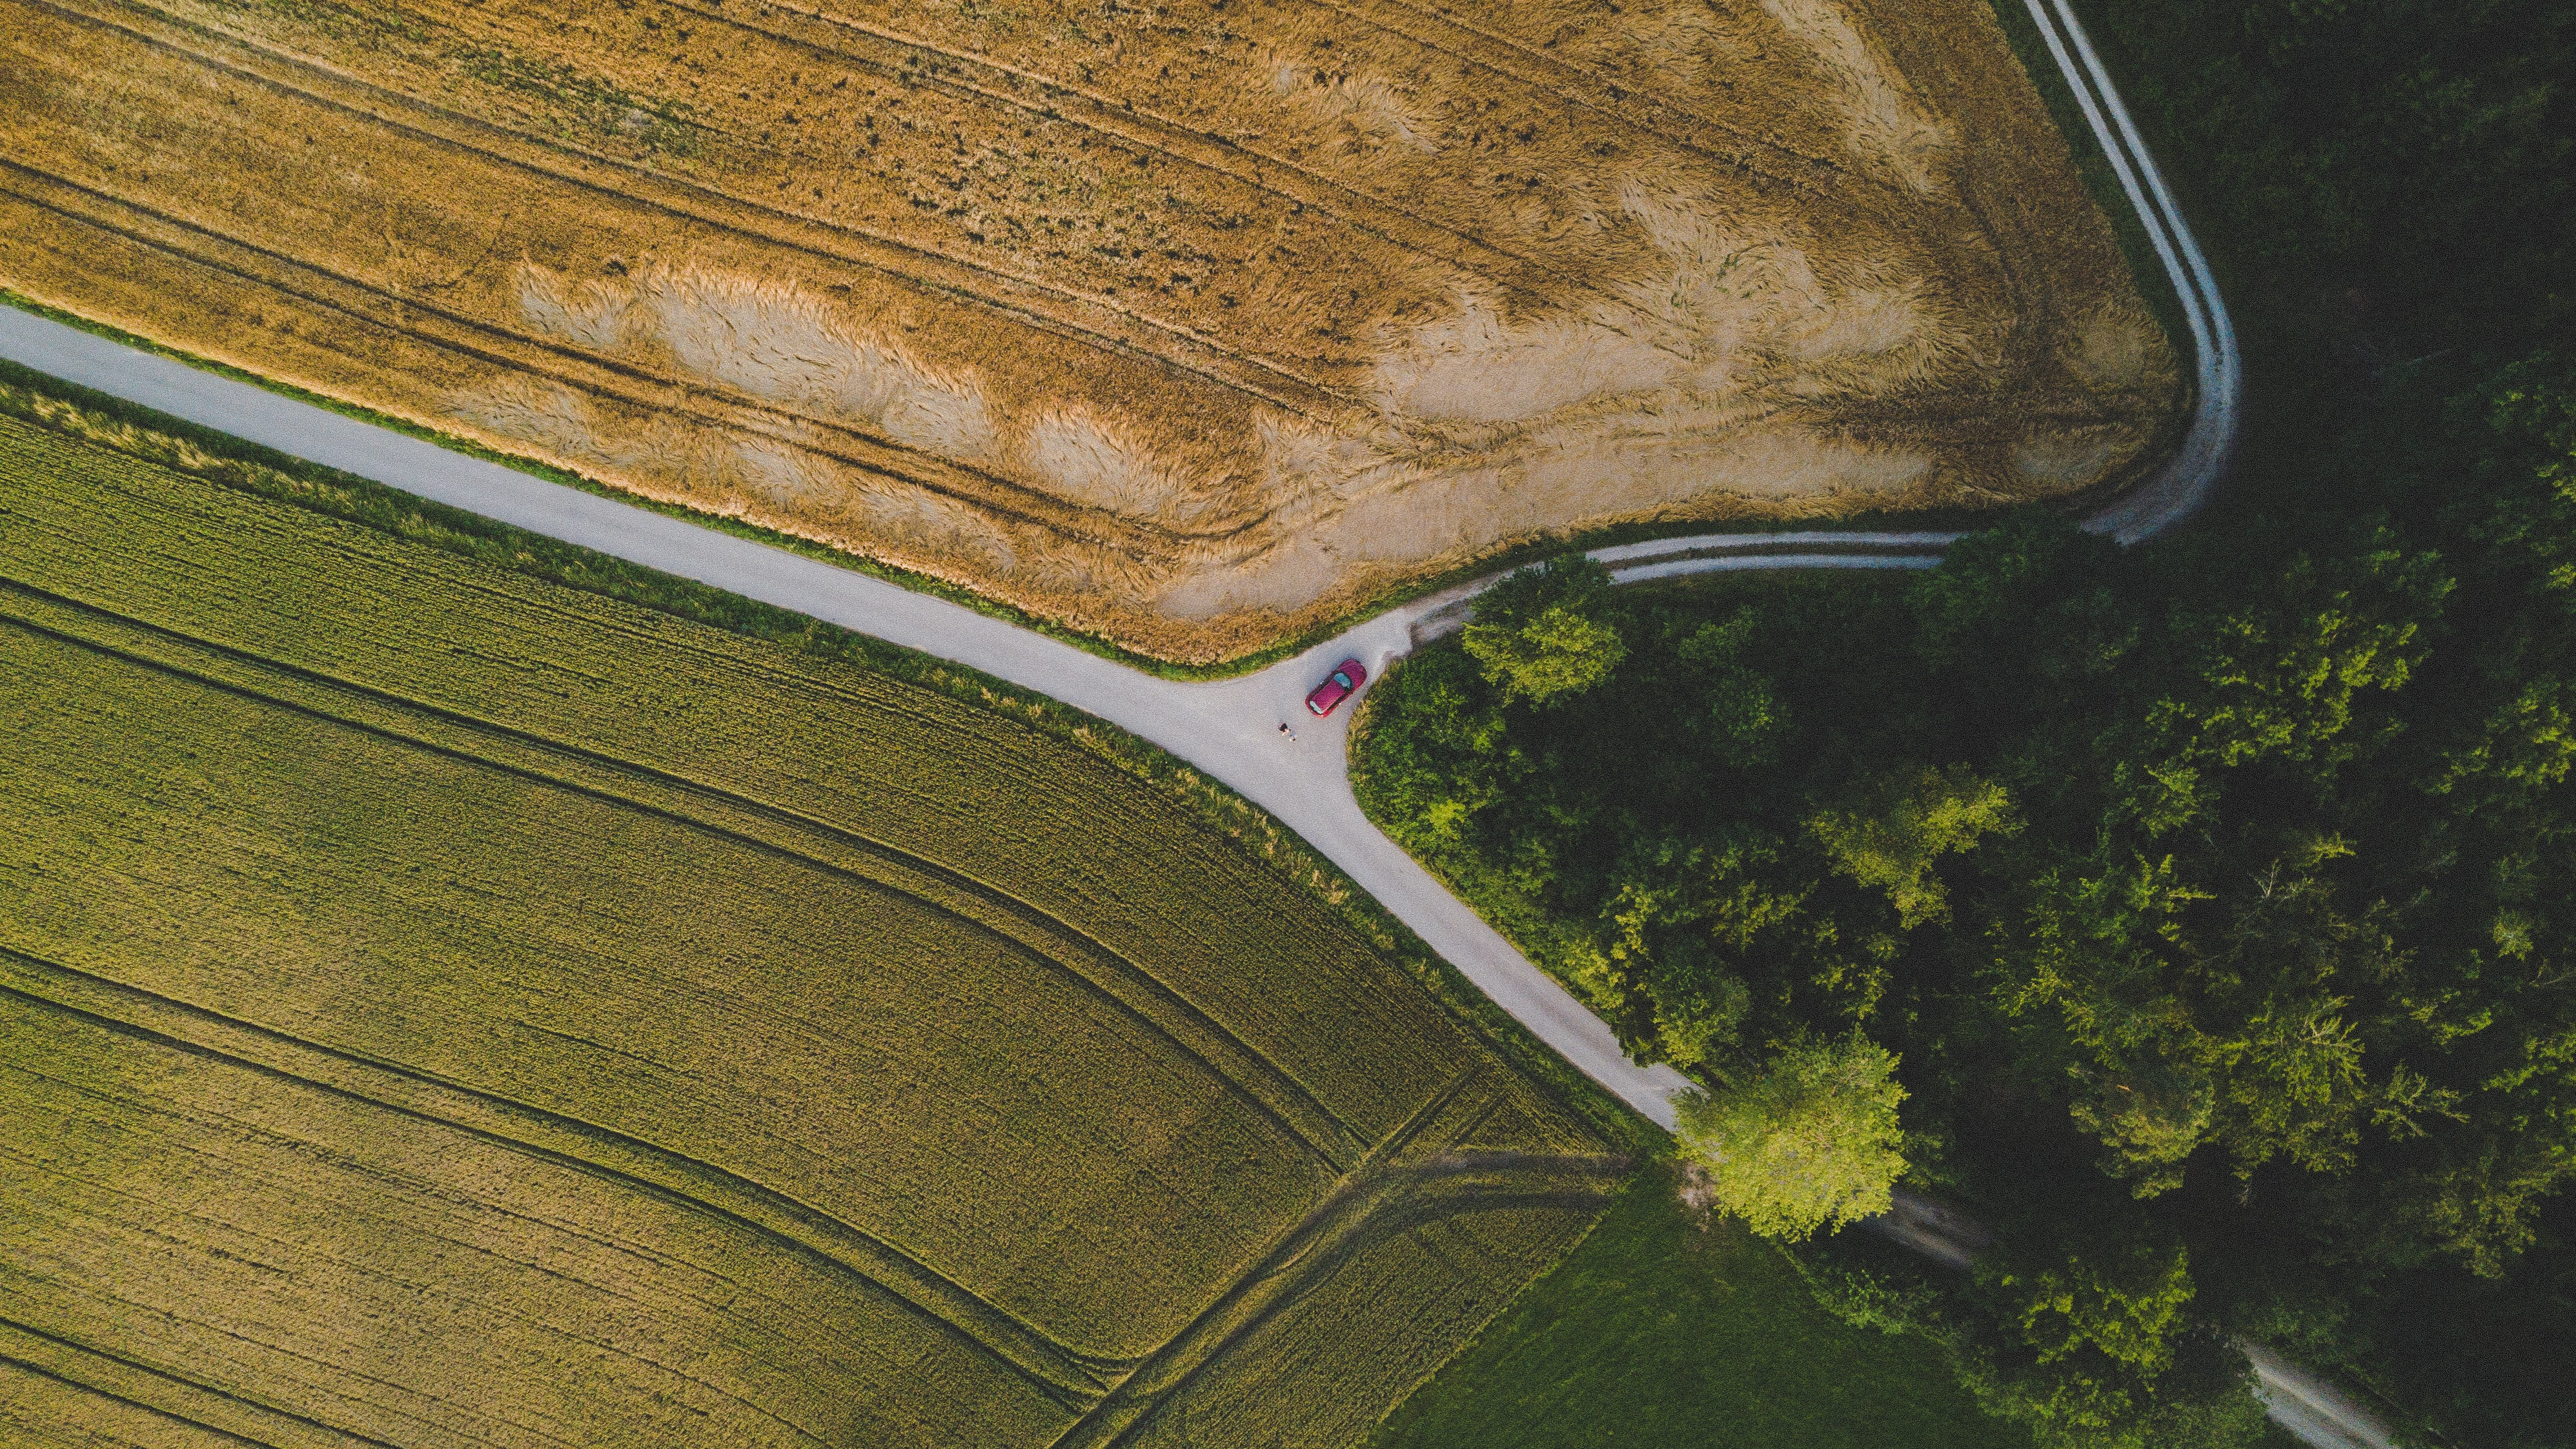 A drone shot of a car at a rural intersection surrounded by fields